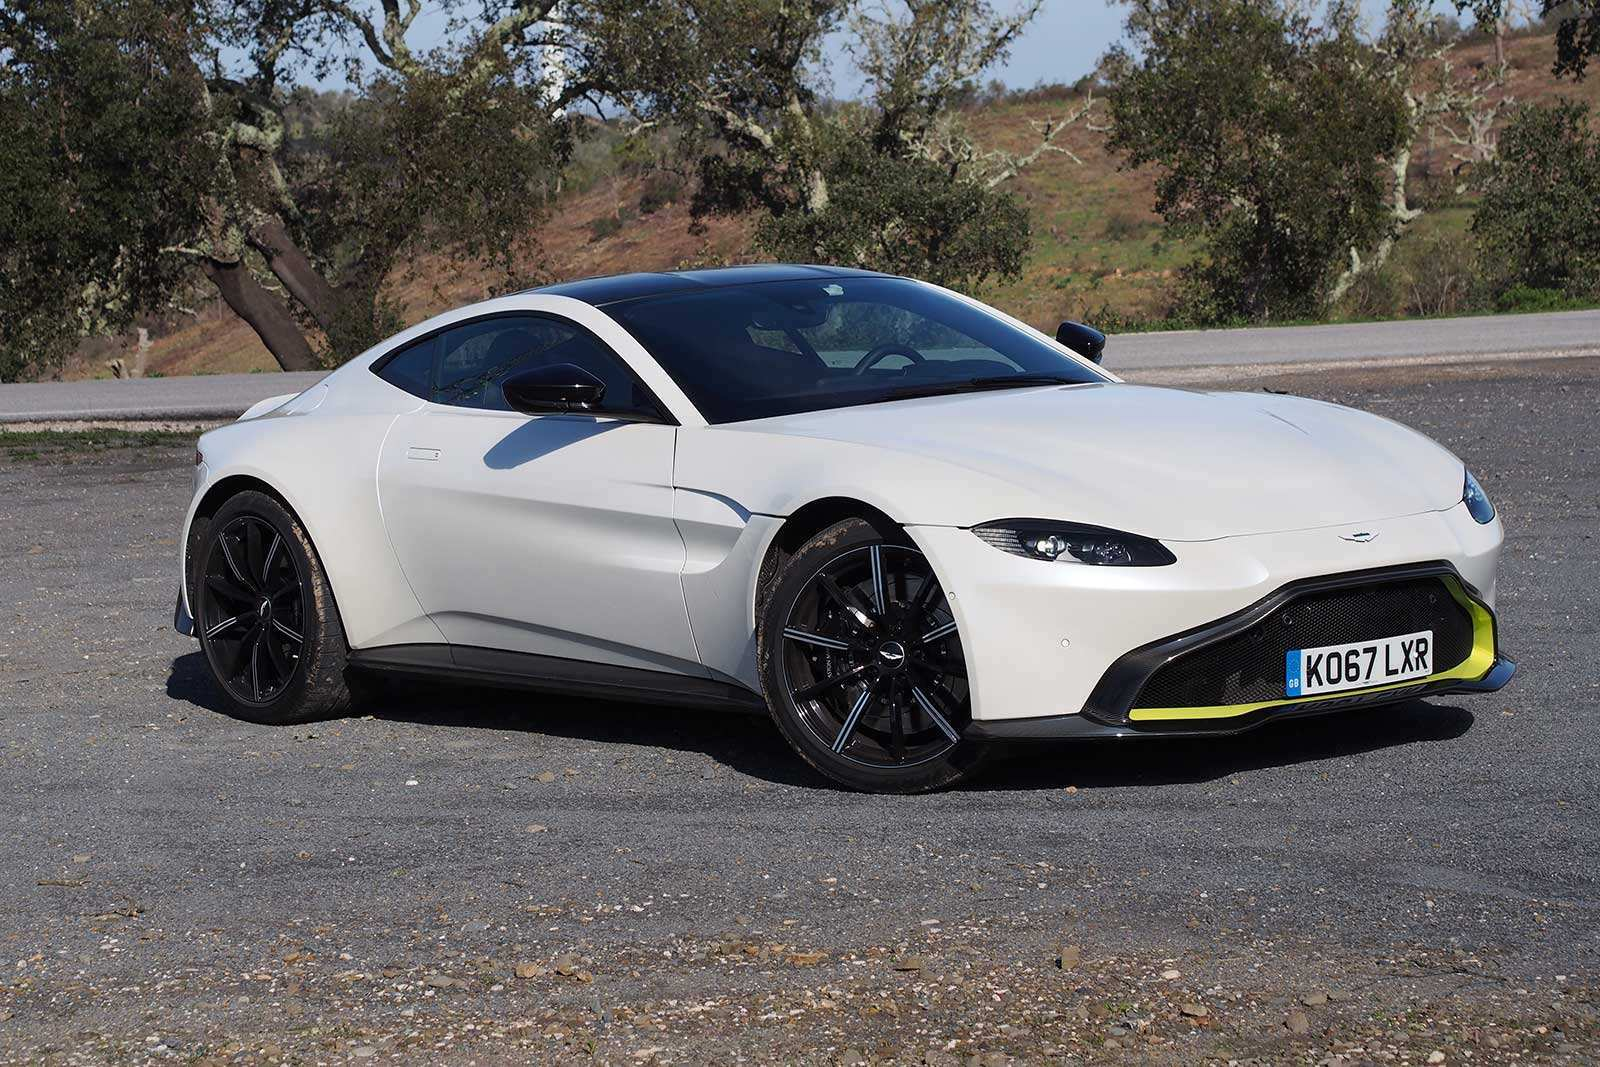 41 Concept of 2019 Aston Martin Db9 Prices with 2019 Aston Martin Db9